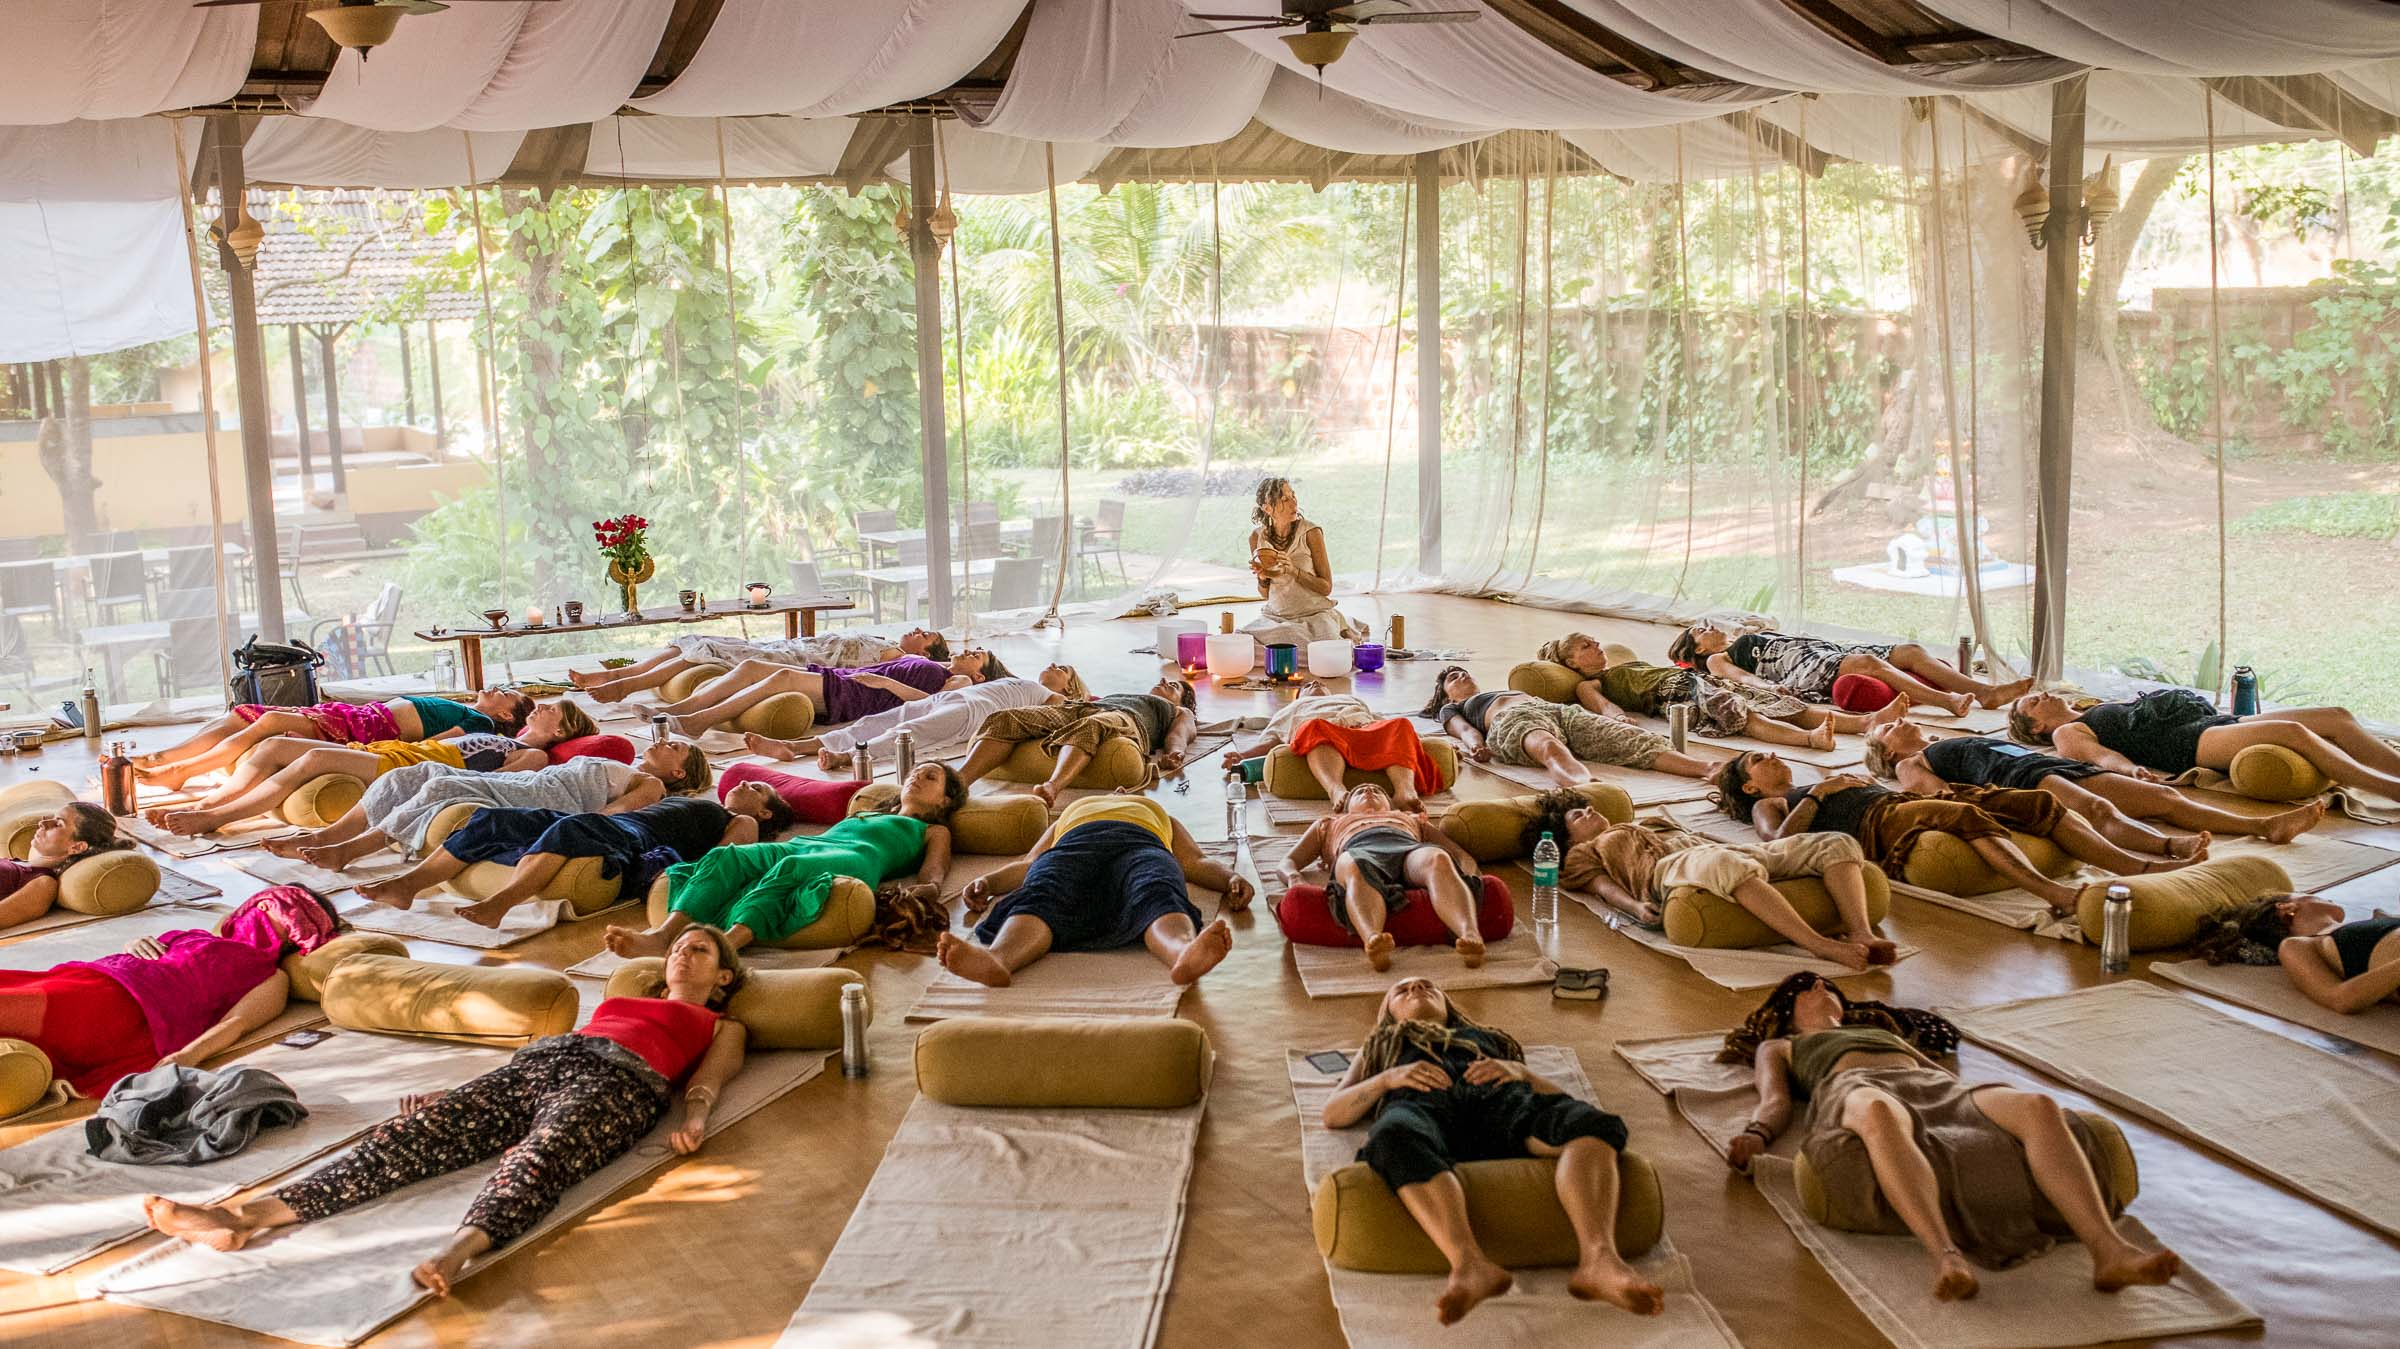 Sound Bath Healing workshop during the dance retreat in India- Magdalena Smolarska Photography